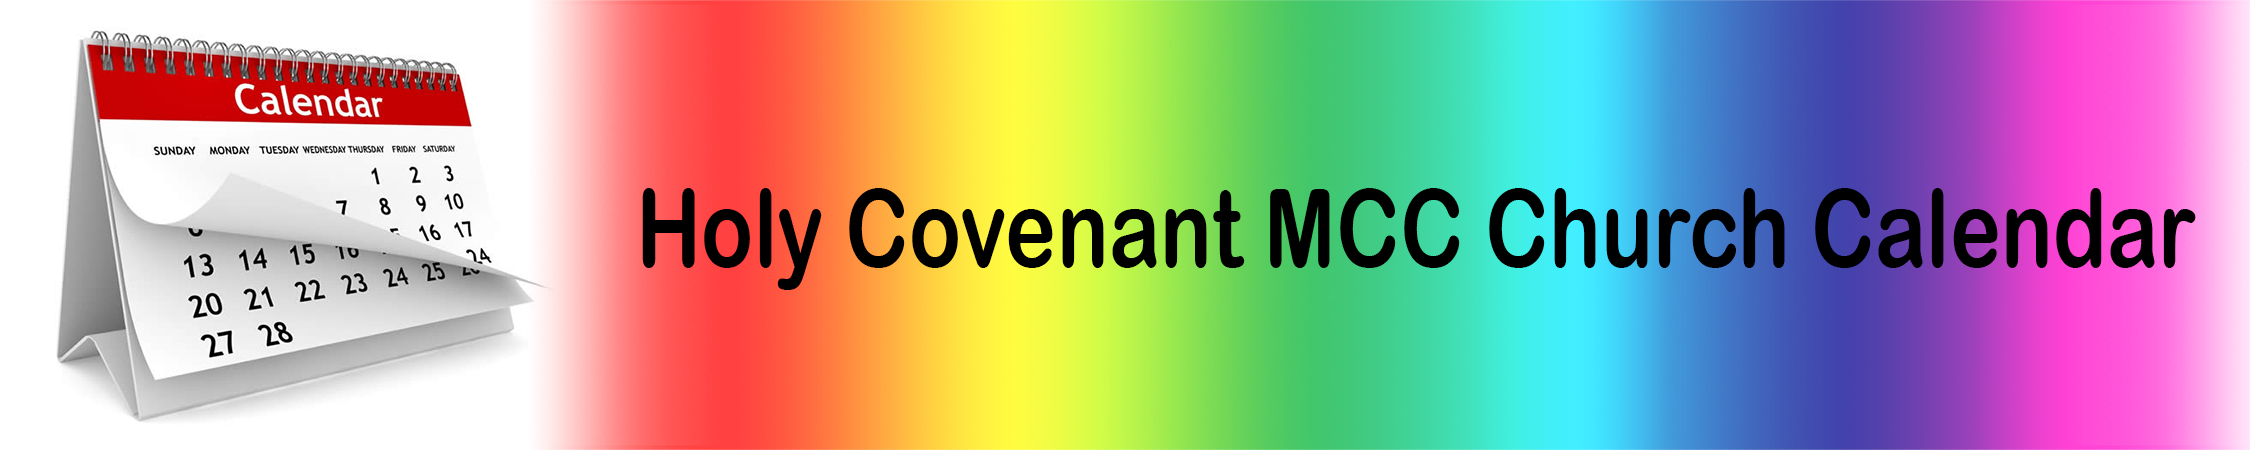 Holy Covenant Event Calendar